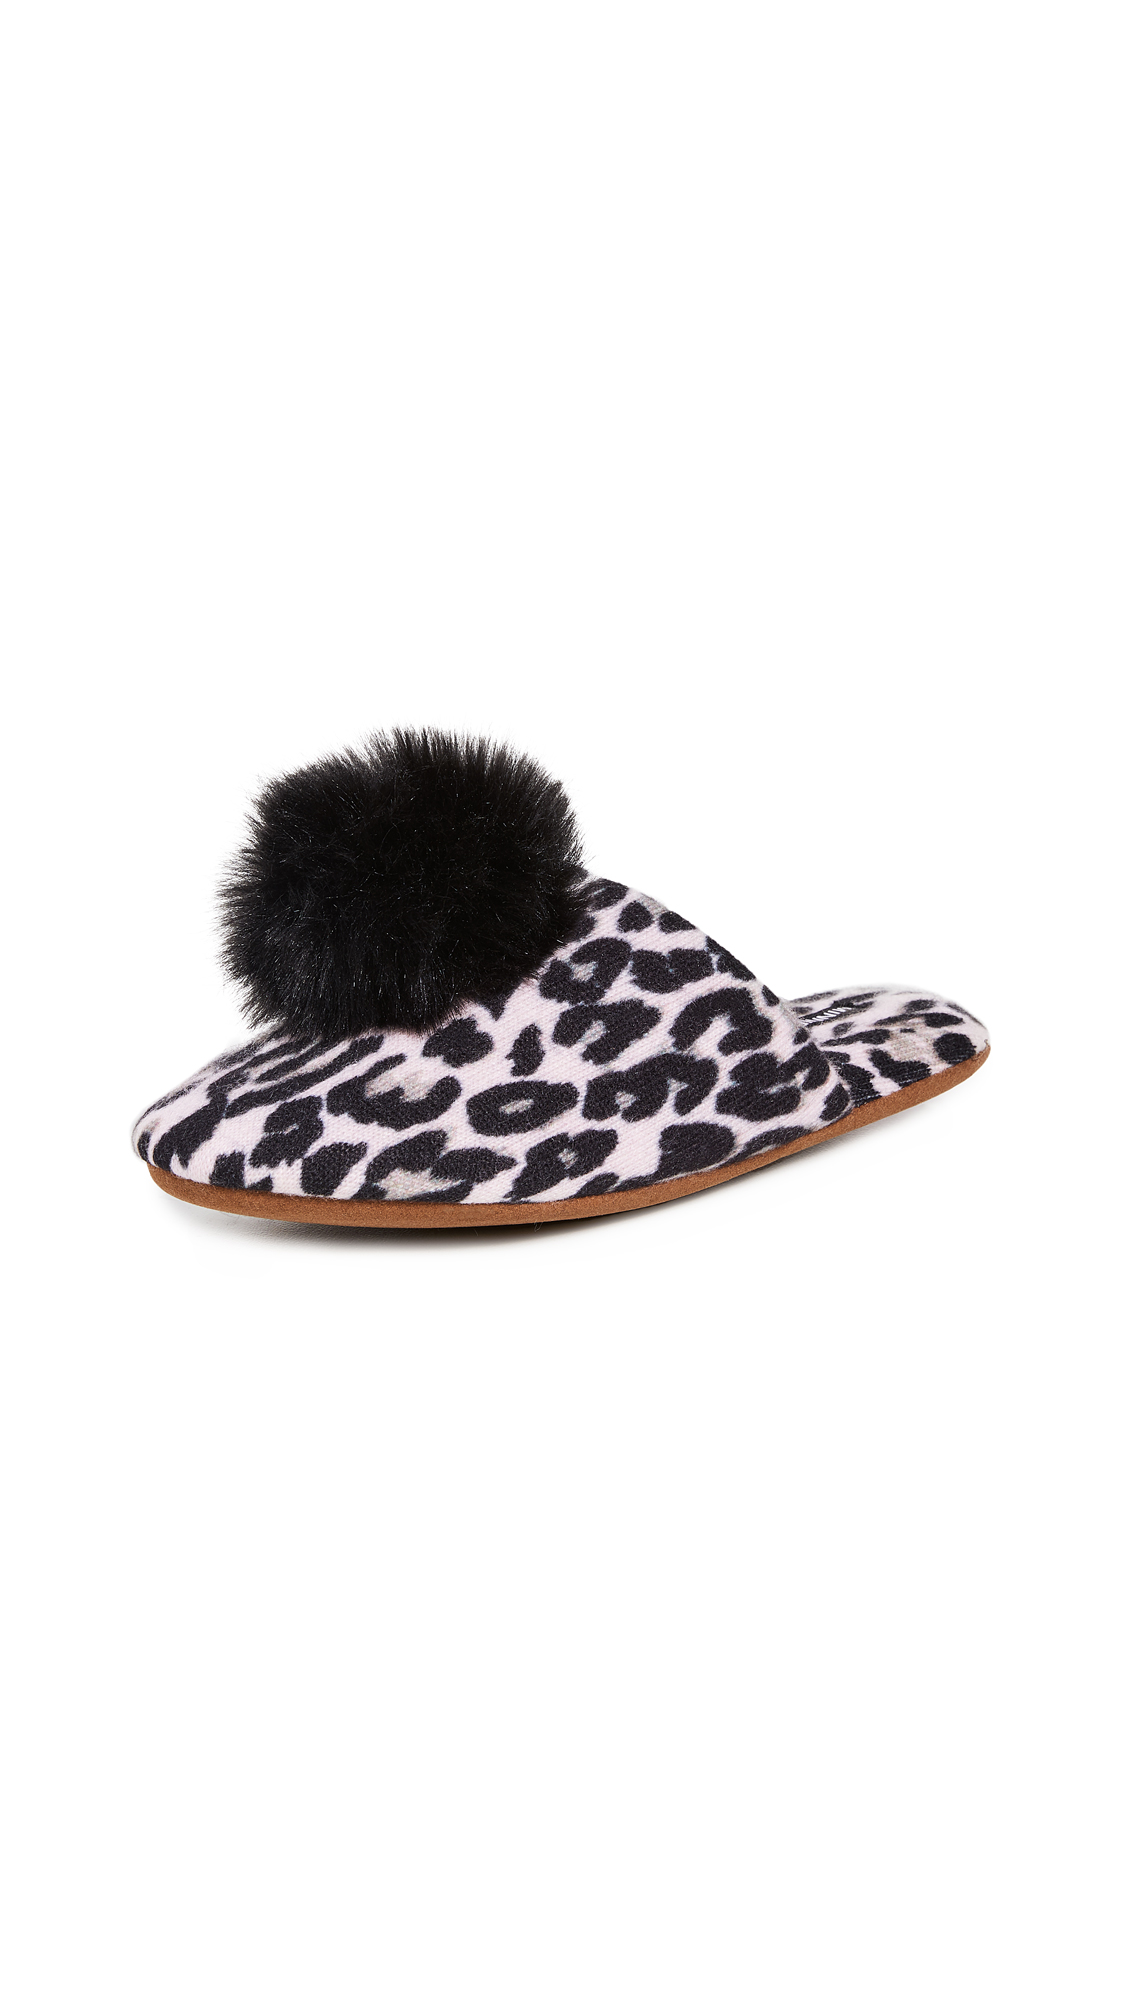 Minnie Rose Leopard Cashmere Pom Pom Slippers – 60% Off Sale